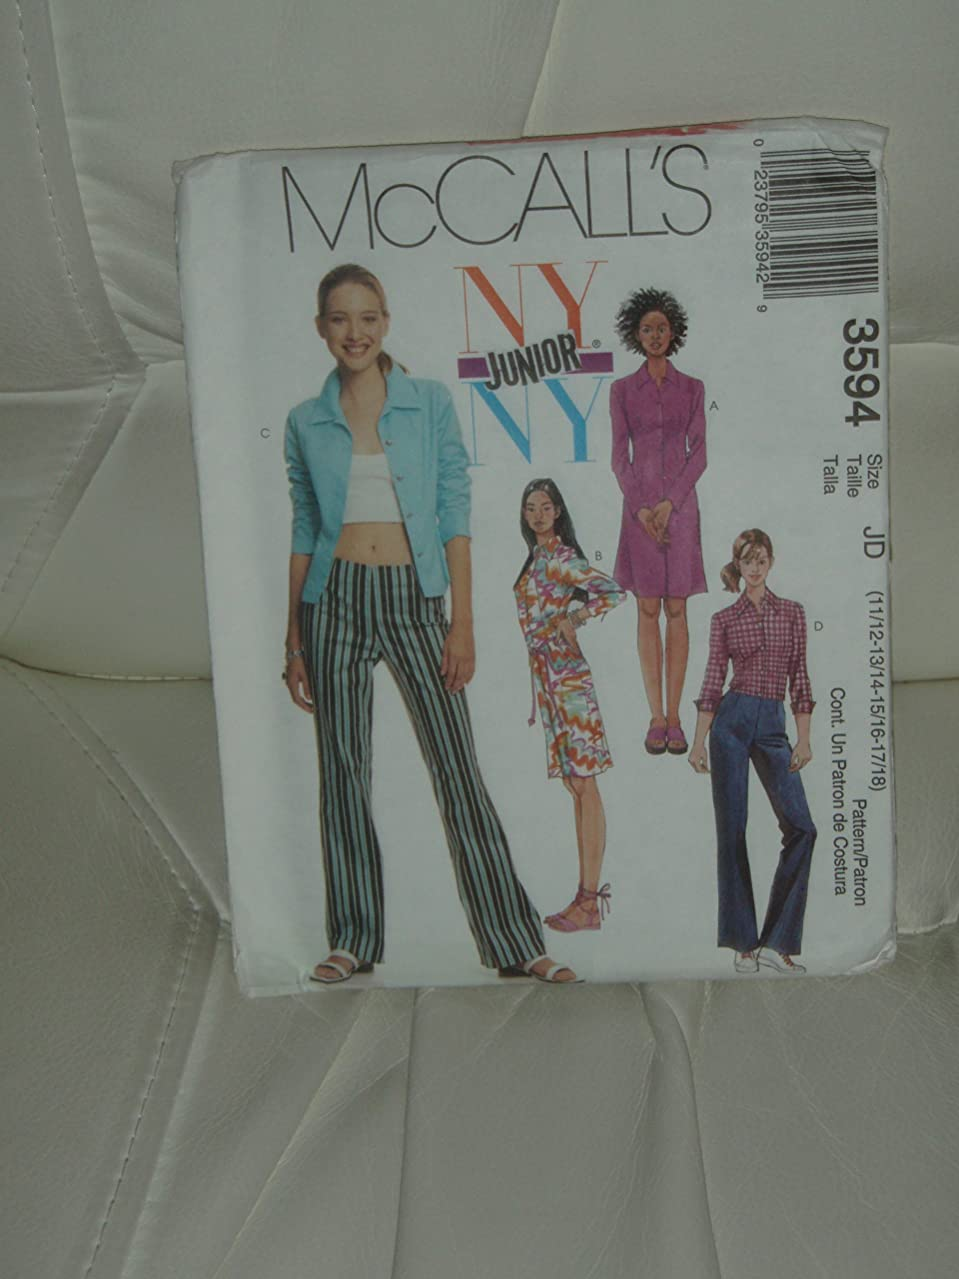 McCall's Sewing Pattern #3594: Junior's Shirt-Dresses, Shirt and Low-Rise Pants (Size 11/12,13/14,15/16,17/18)